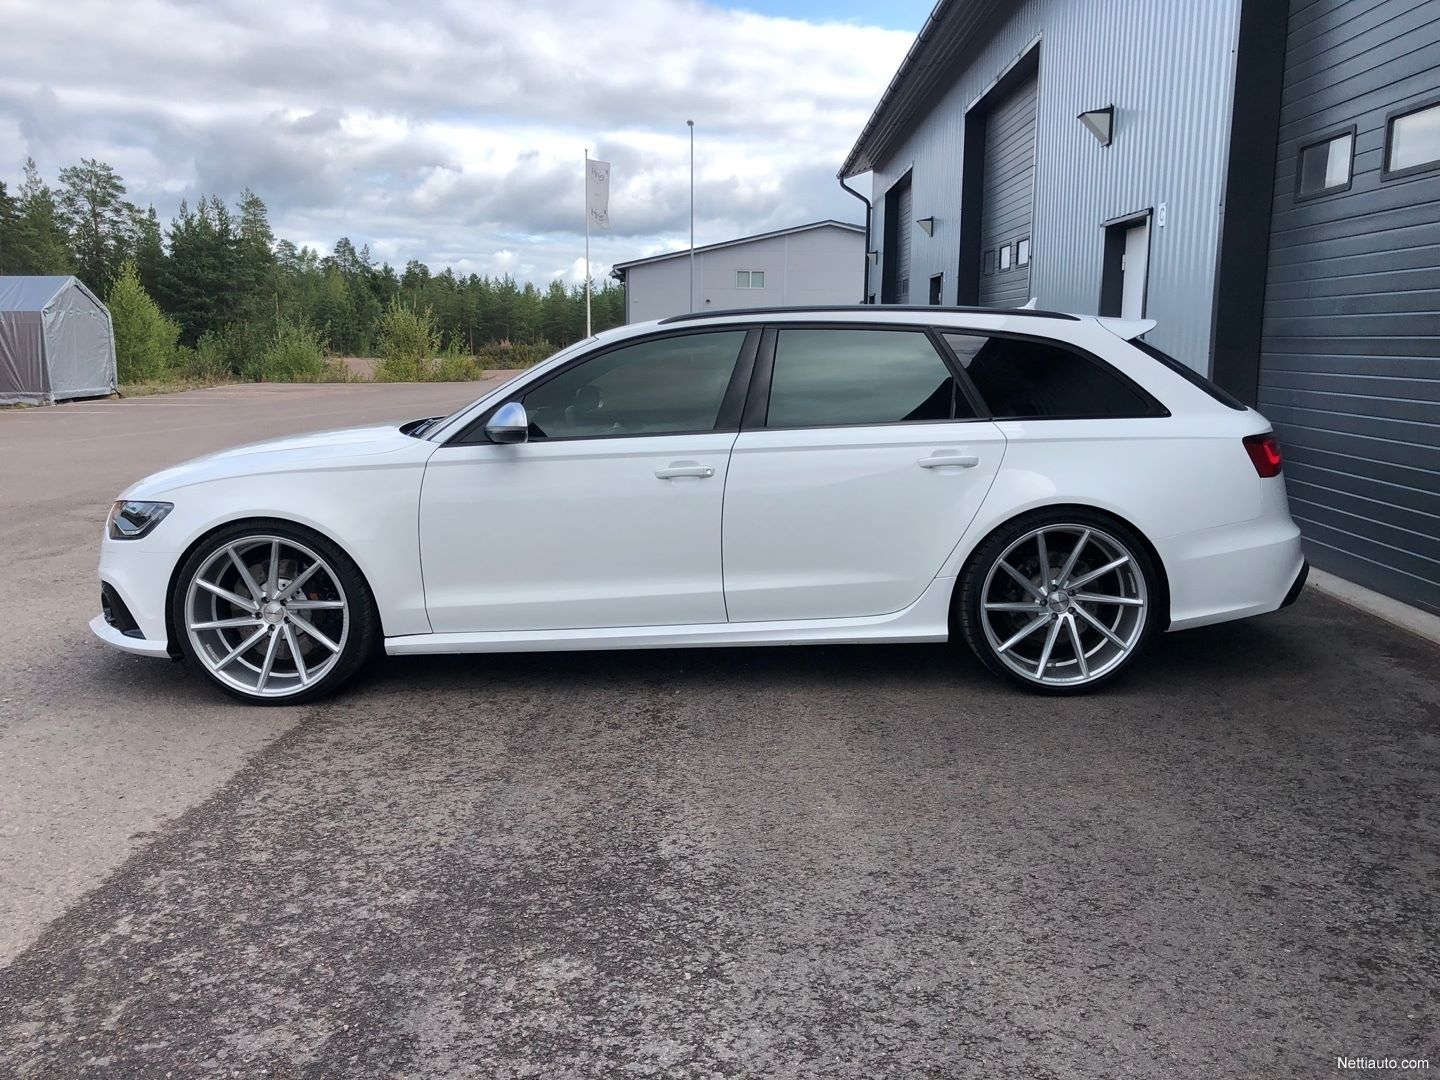 Audi-RS6-Avant-Kimi-Raikkonen-for-sale-3